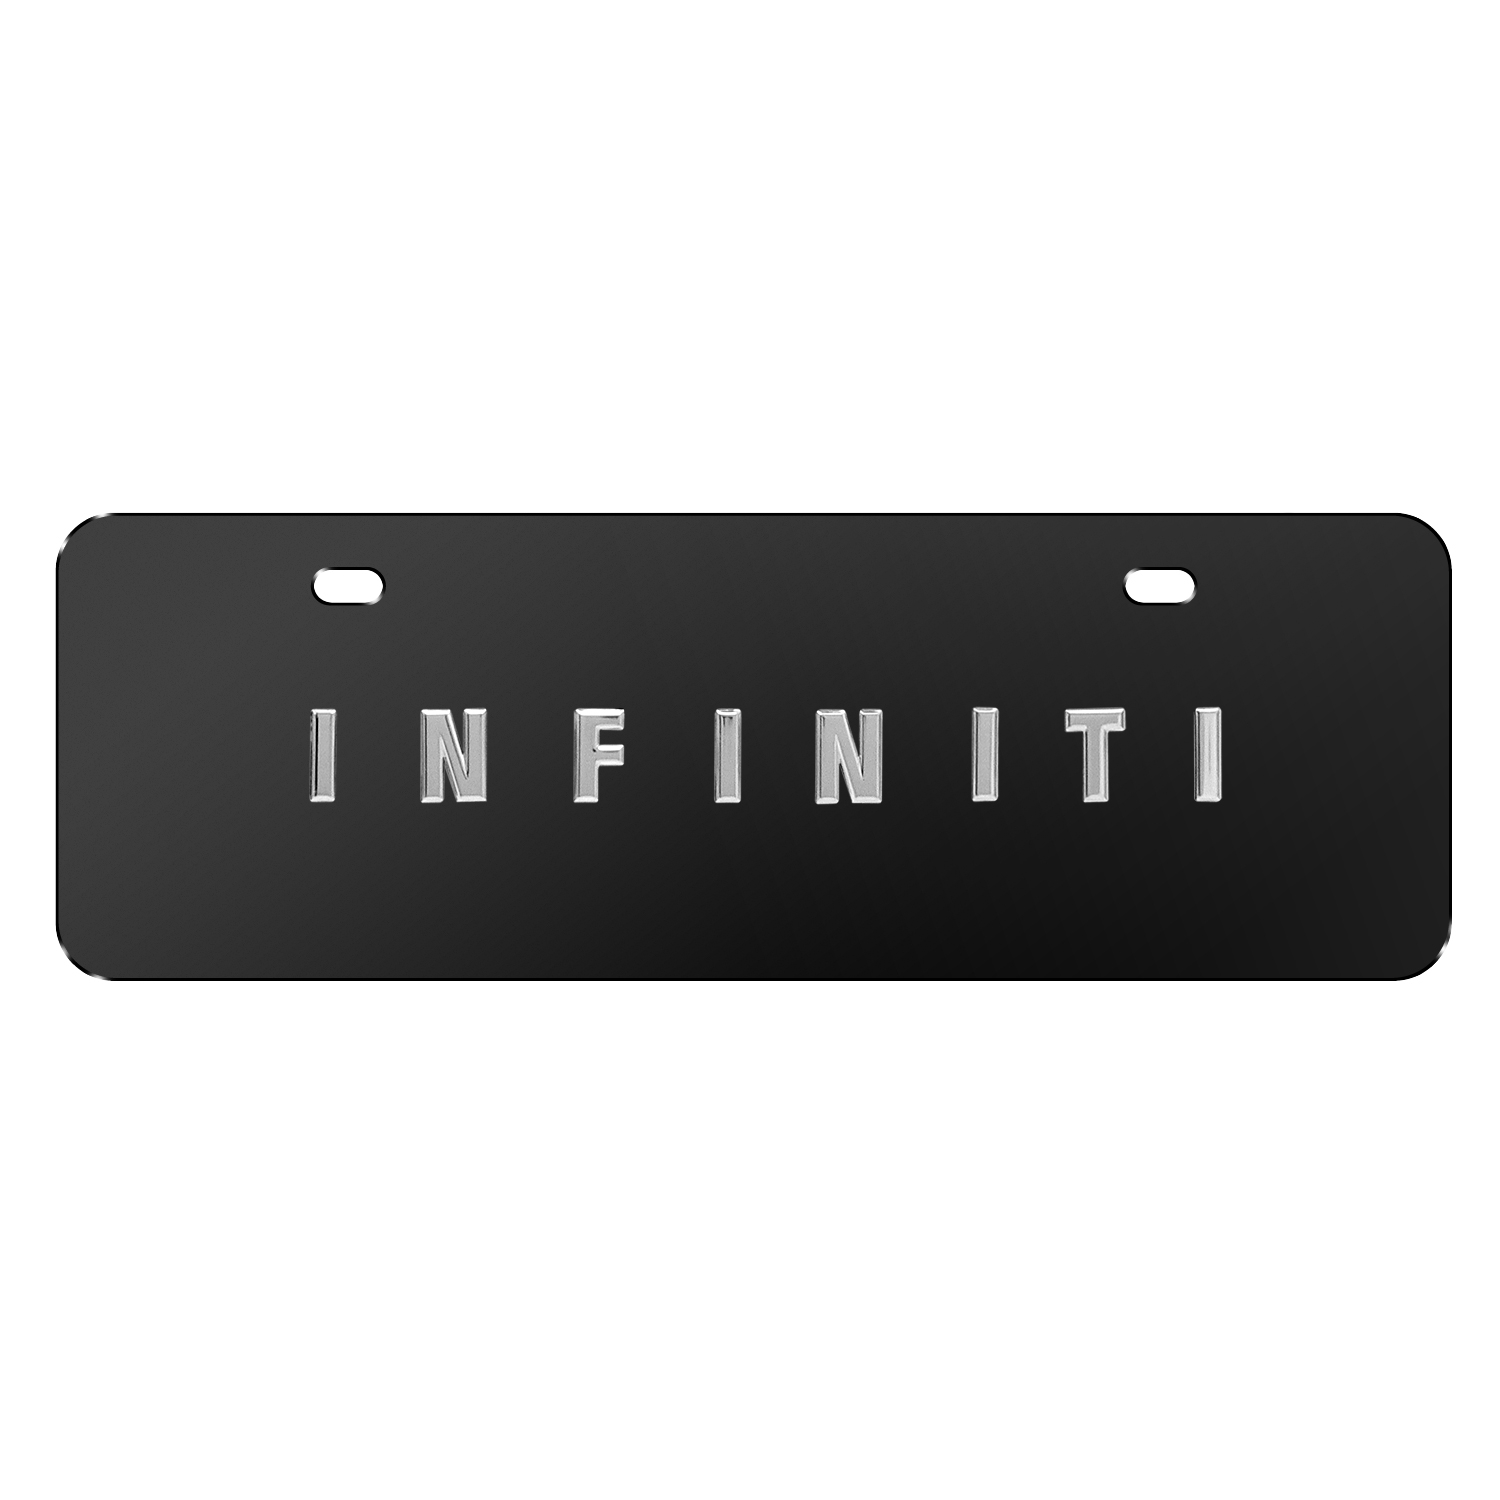 "INFINITI Name Black 12""x4"" Half-Size Stainless Steel License Plate"